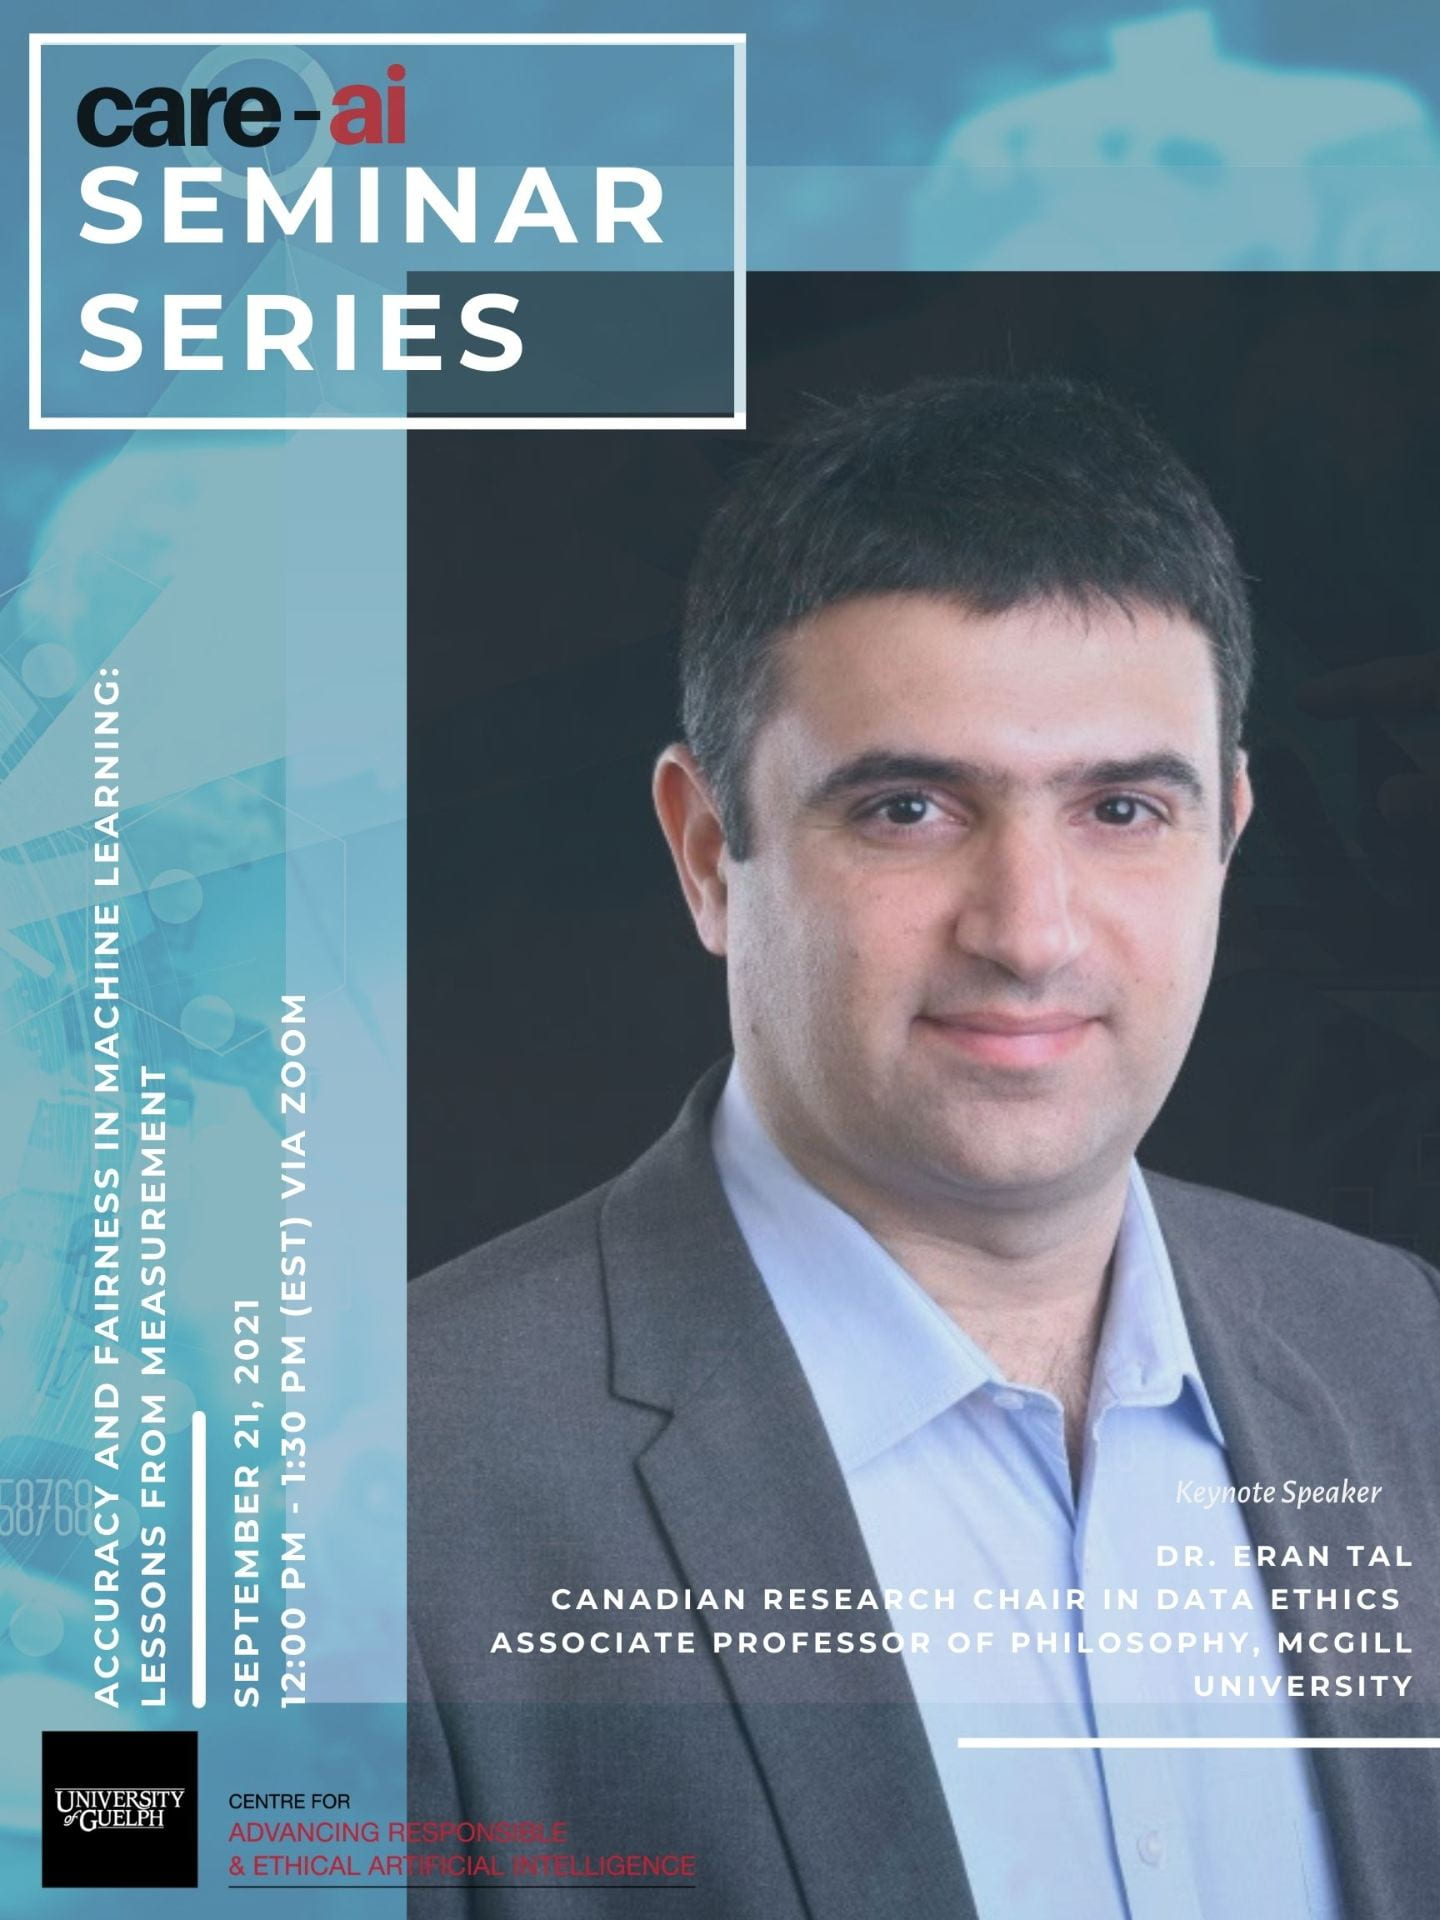 Event poster showing Dr. Eran Tal wearing a suit and facing forward. Details of event in Description